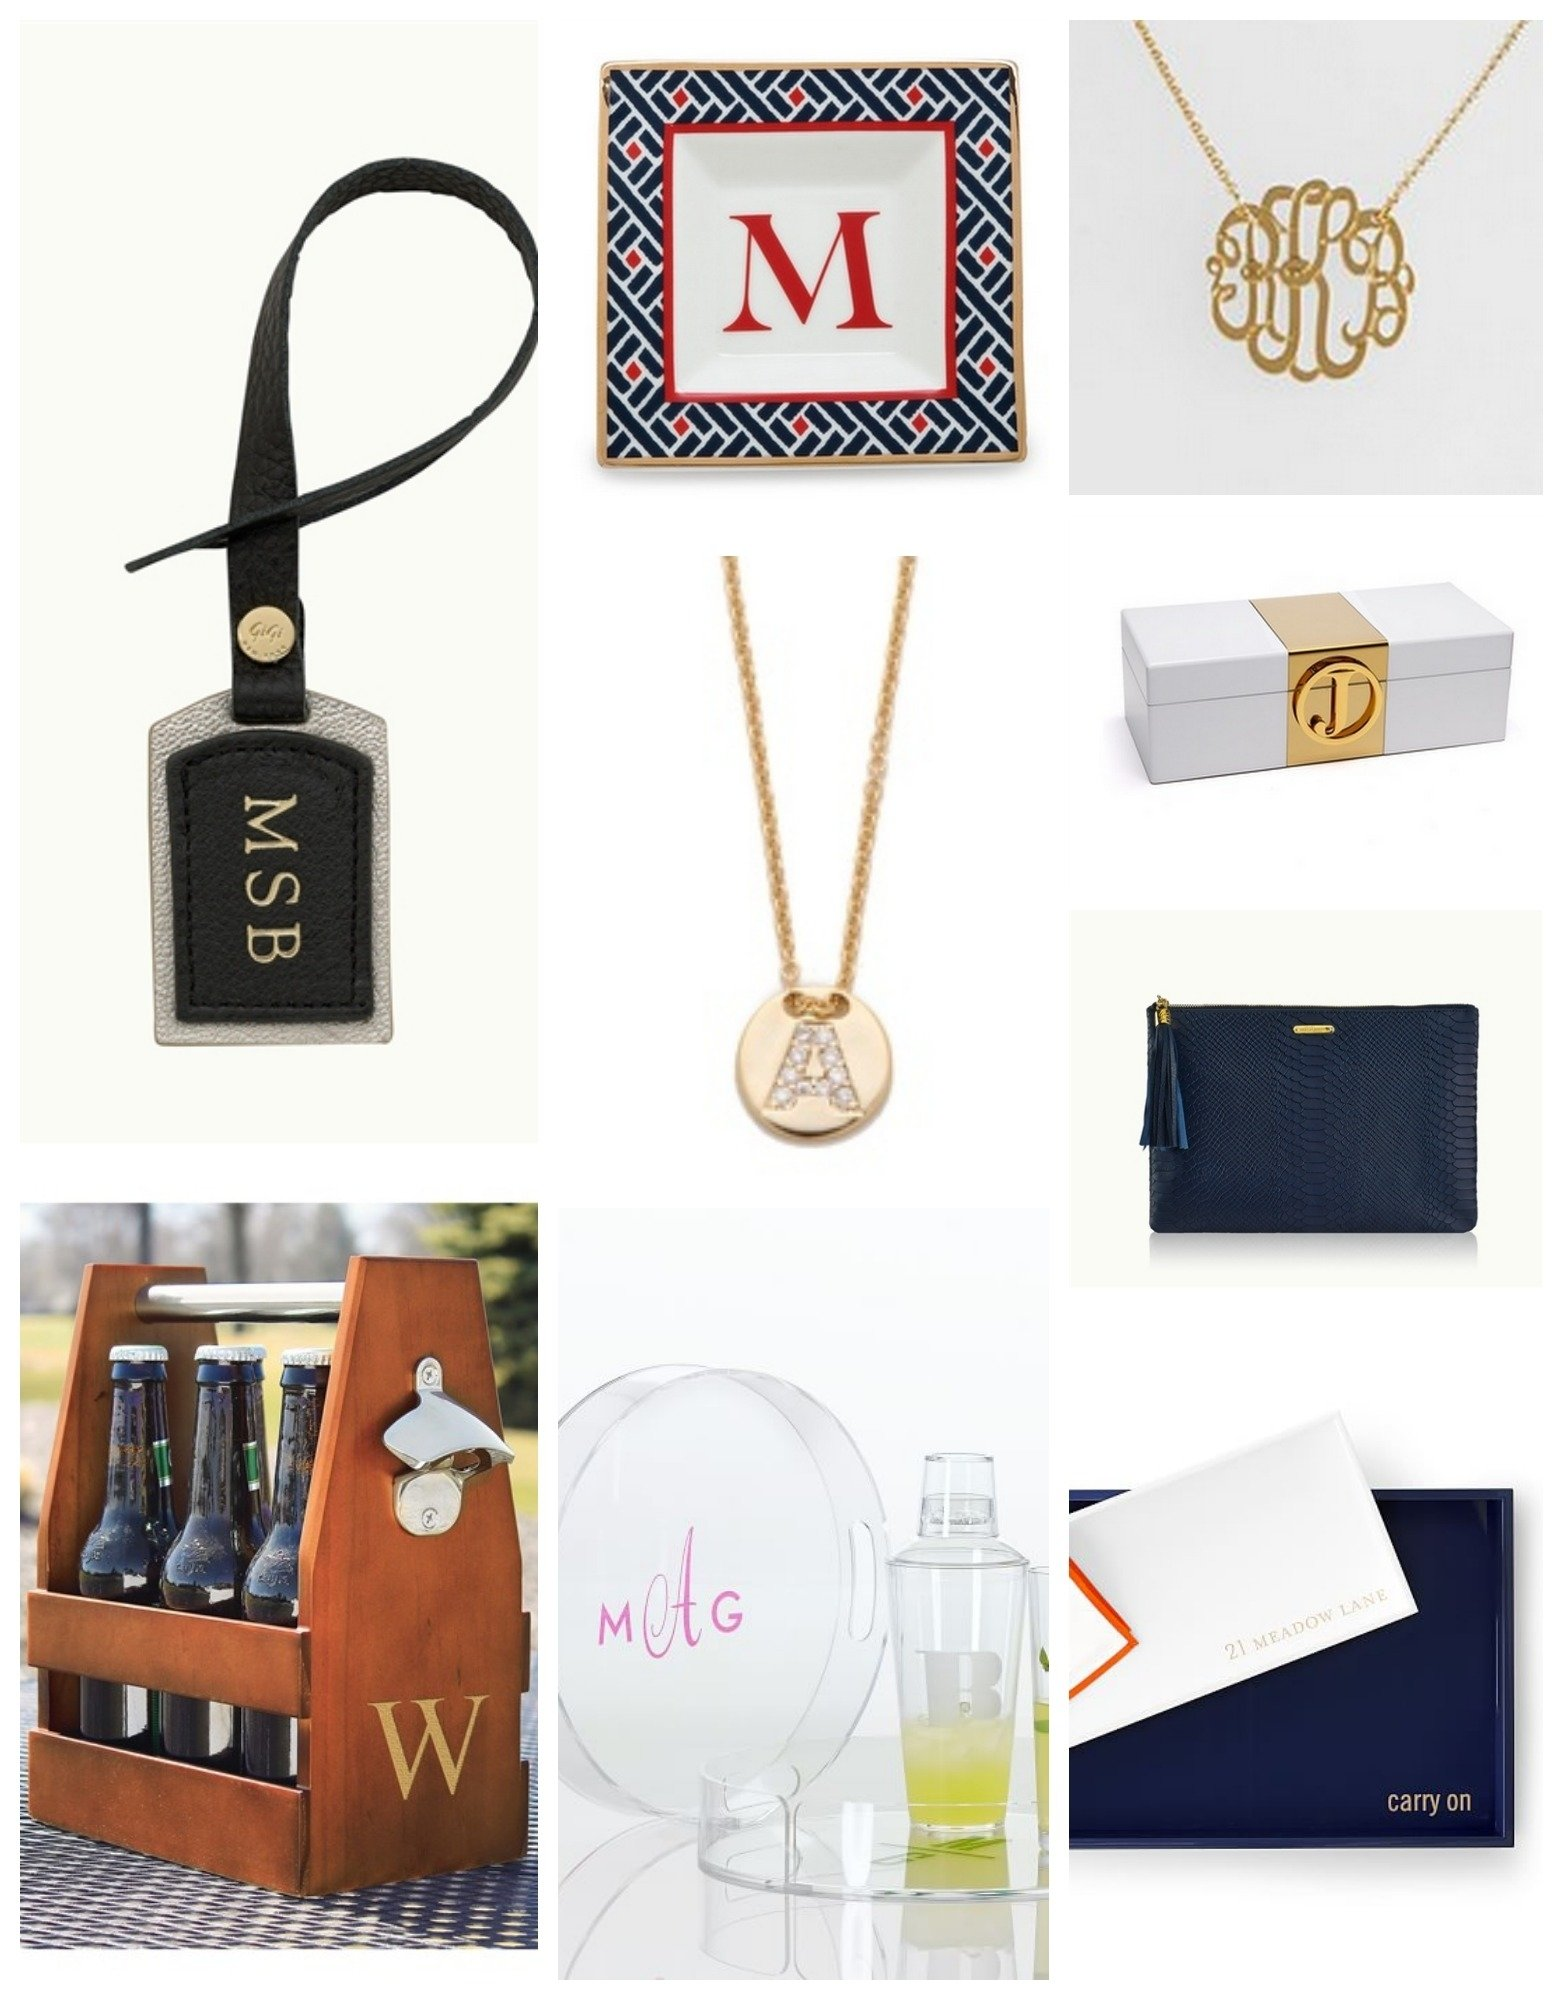 10 Attractive Personalized Gift Ideas For Her gift guide personalized gift ideas for her the jcr girls 2020